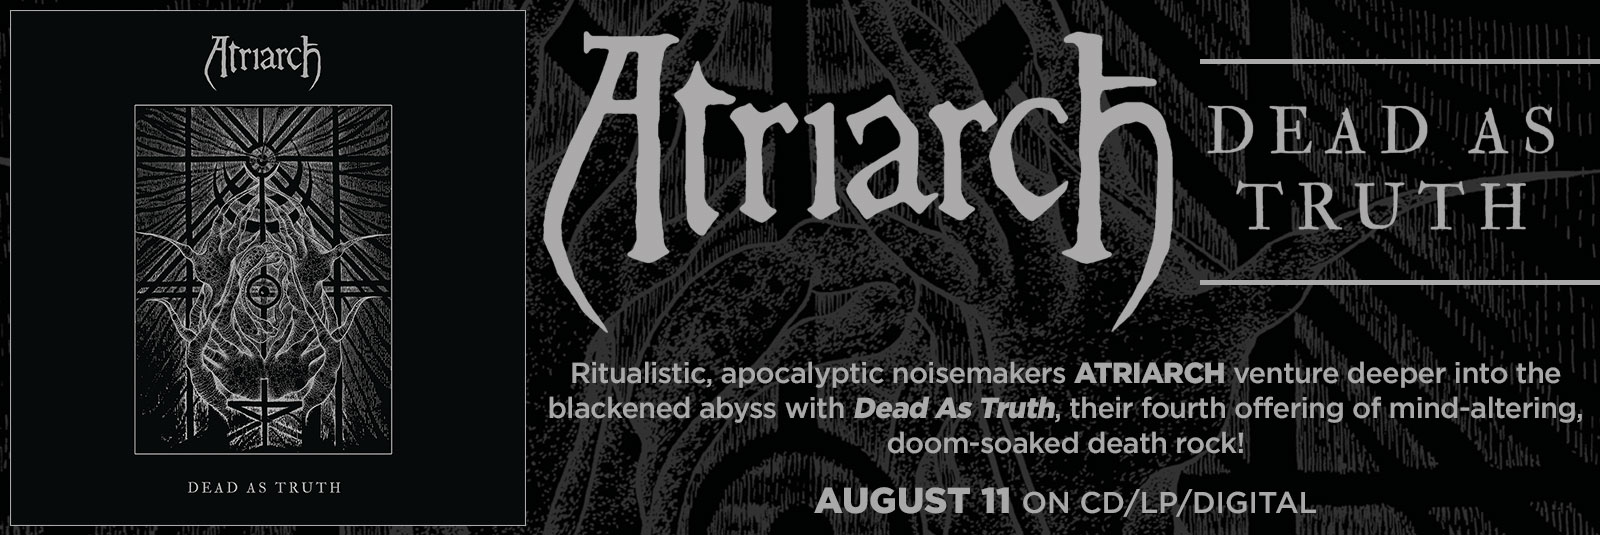 atriarch-dead-as-truth-relapse-records